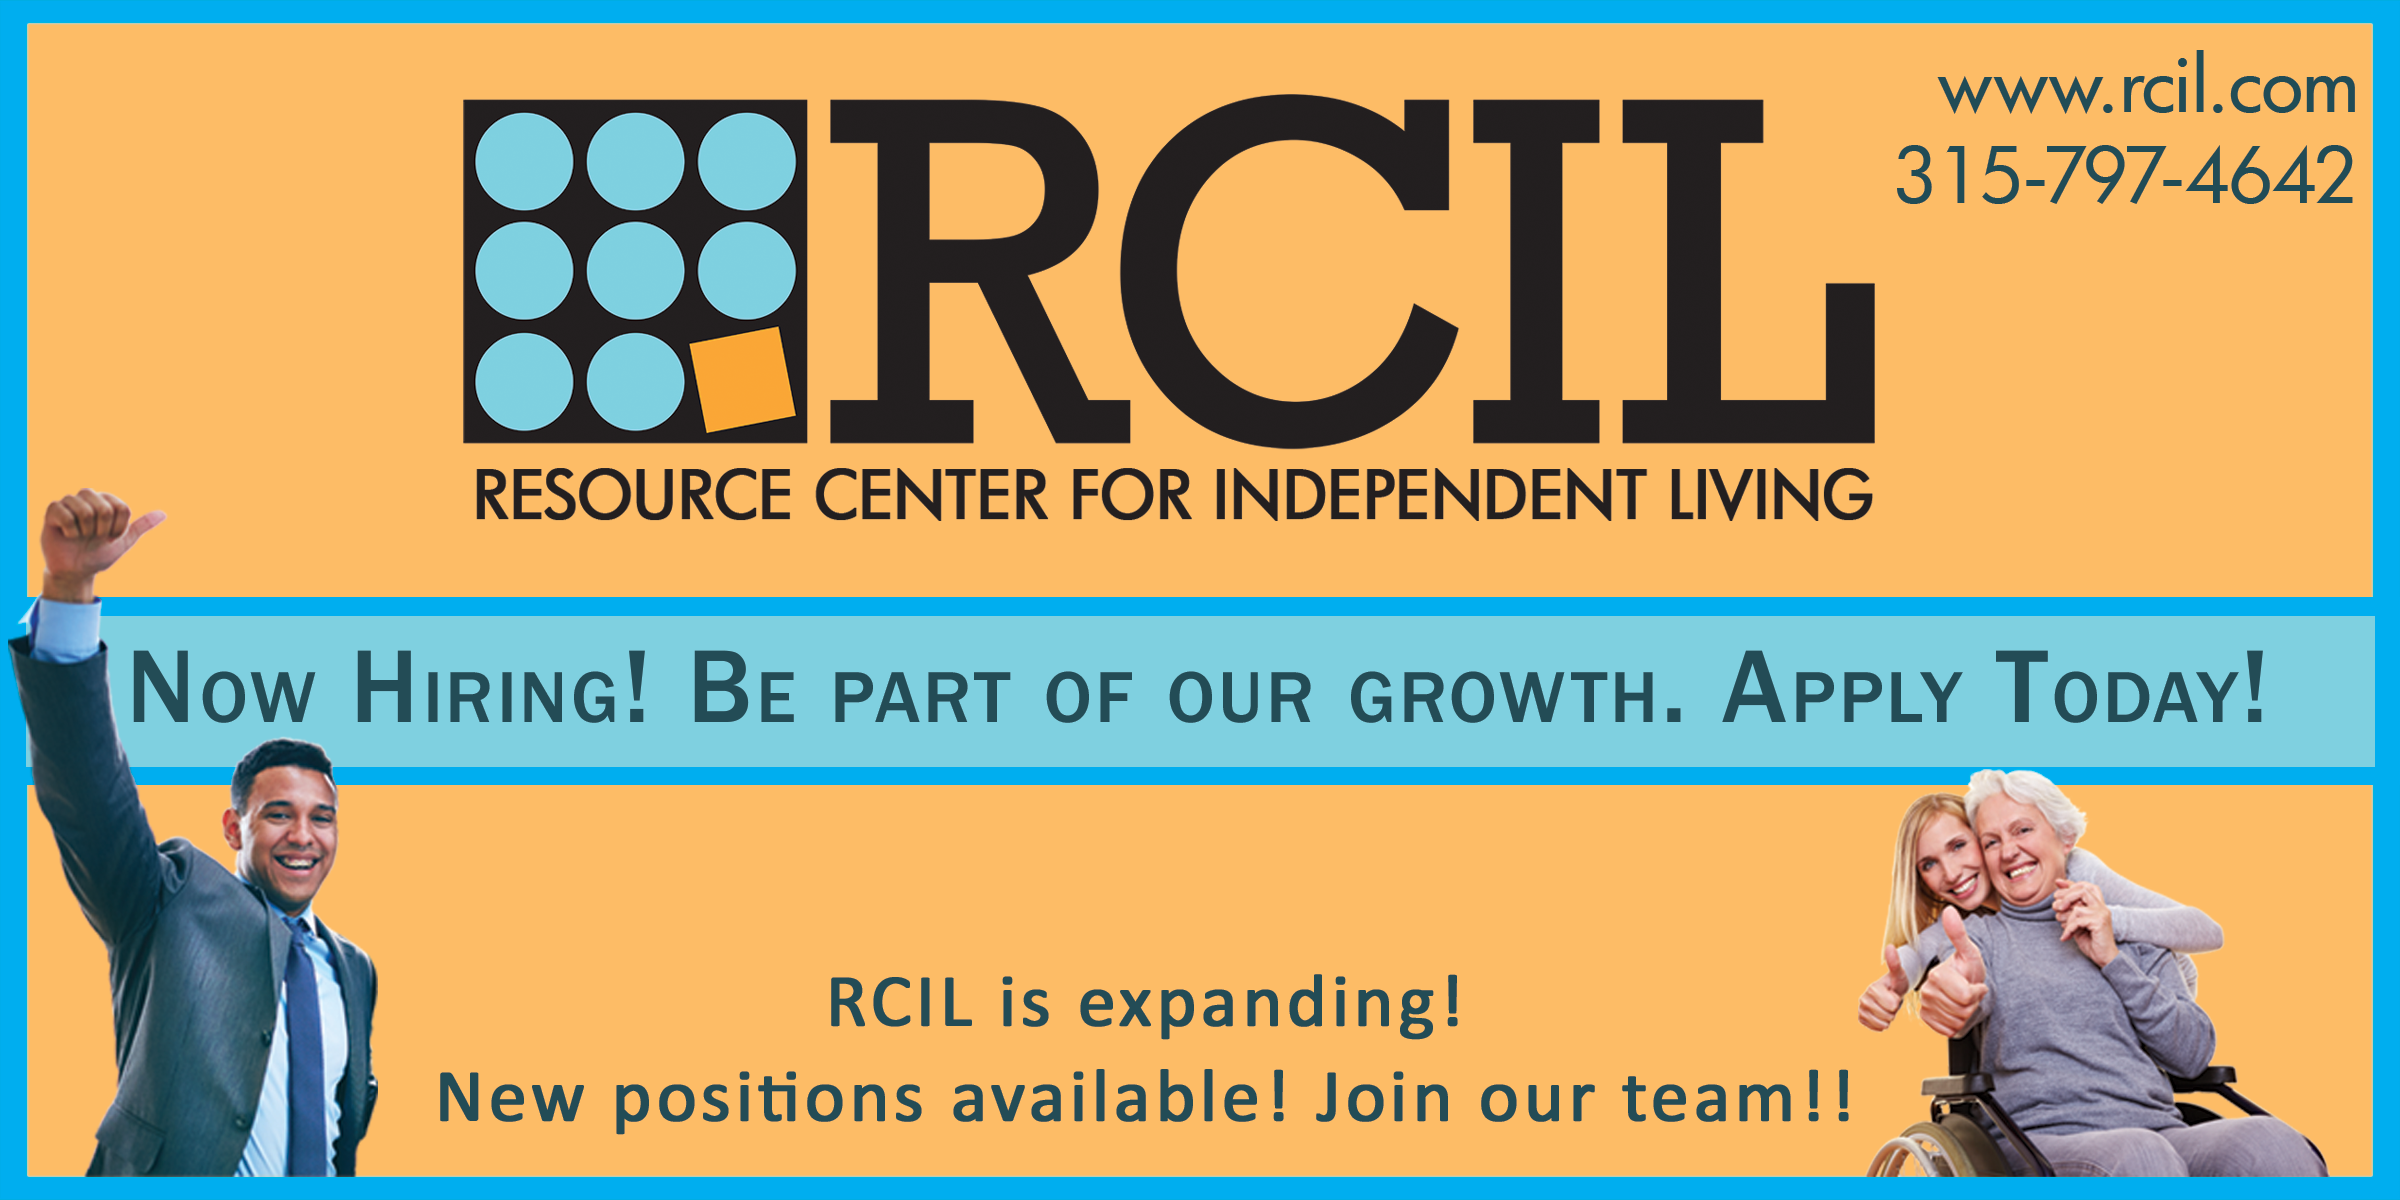 RCIL is now hiring! Be part of our growth. Click here to apply today